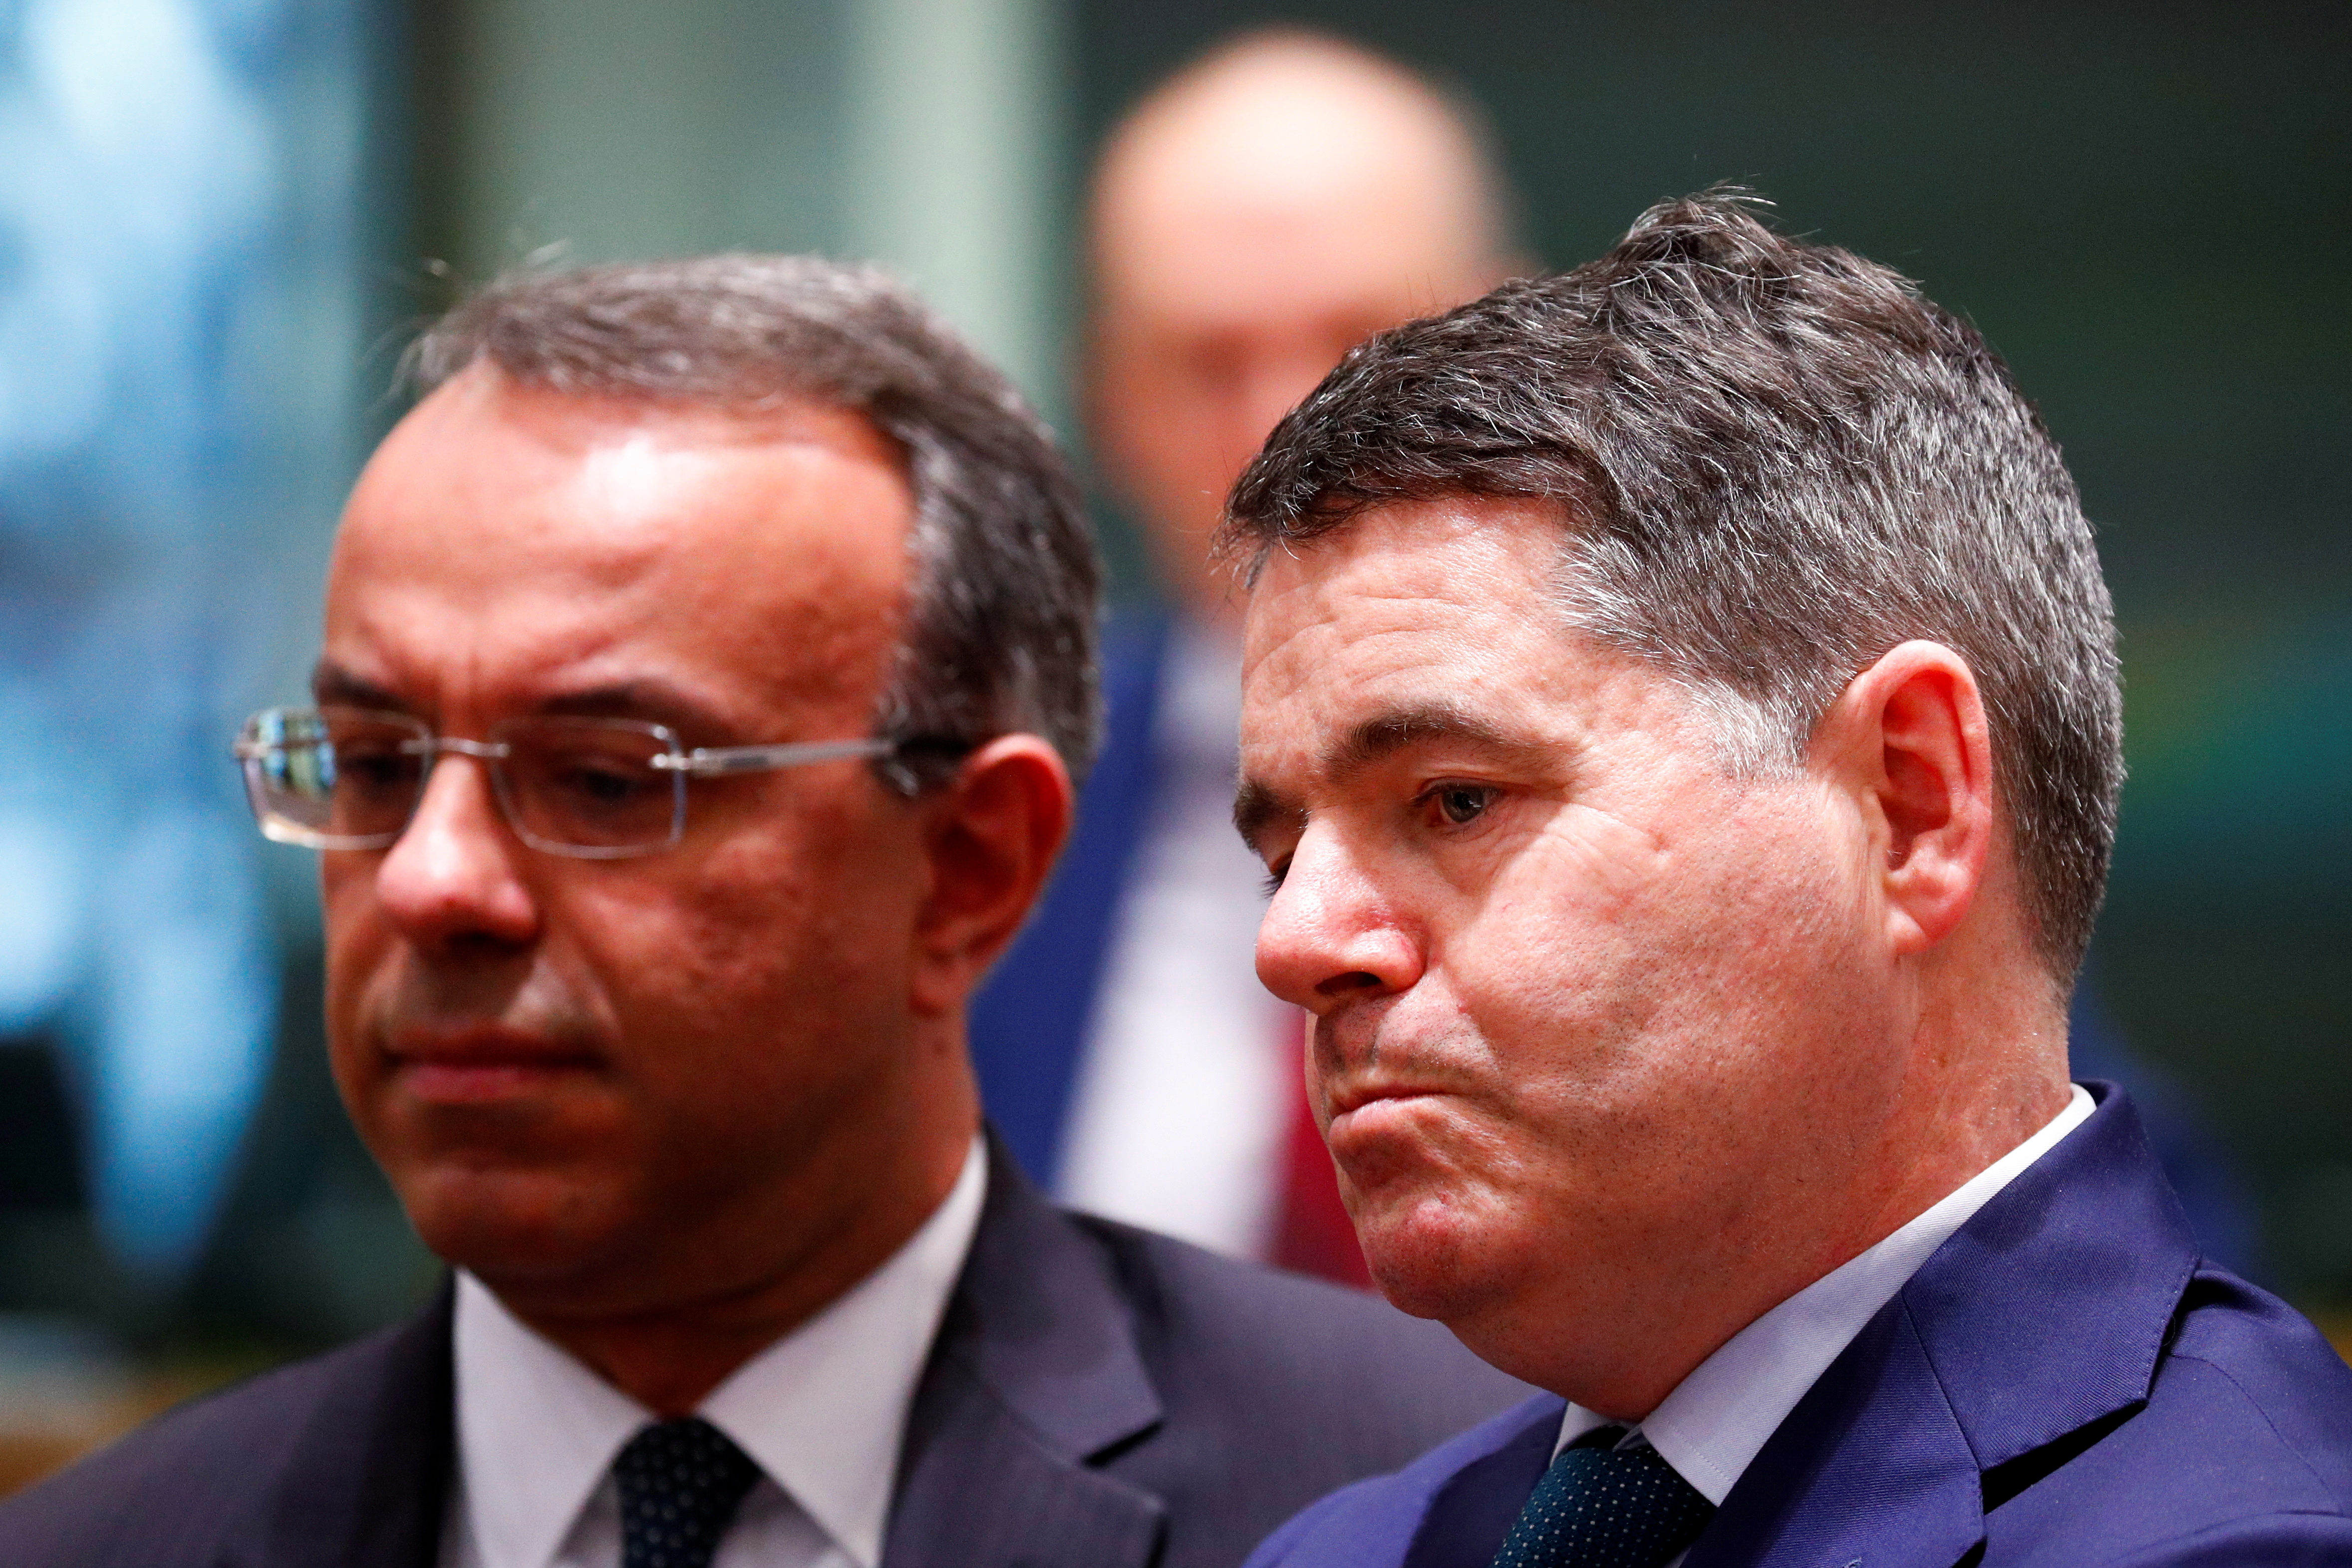 Irish Finance Minister Paschal Donohoe (R) and Greek Finance Minister Christos Staikouras attend a Euro zone finance ministers meeting in Brussels, Belgium, December 4, 2019. REUTERS/Francois Lenoir/File Photo